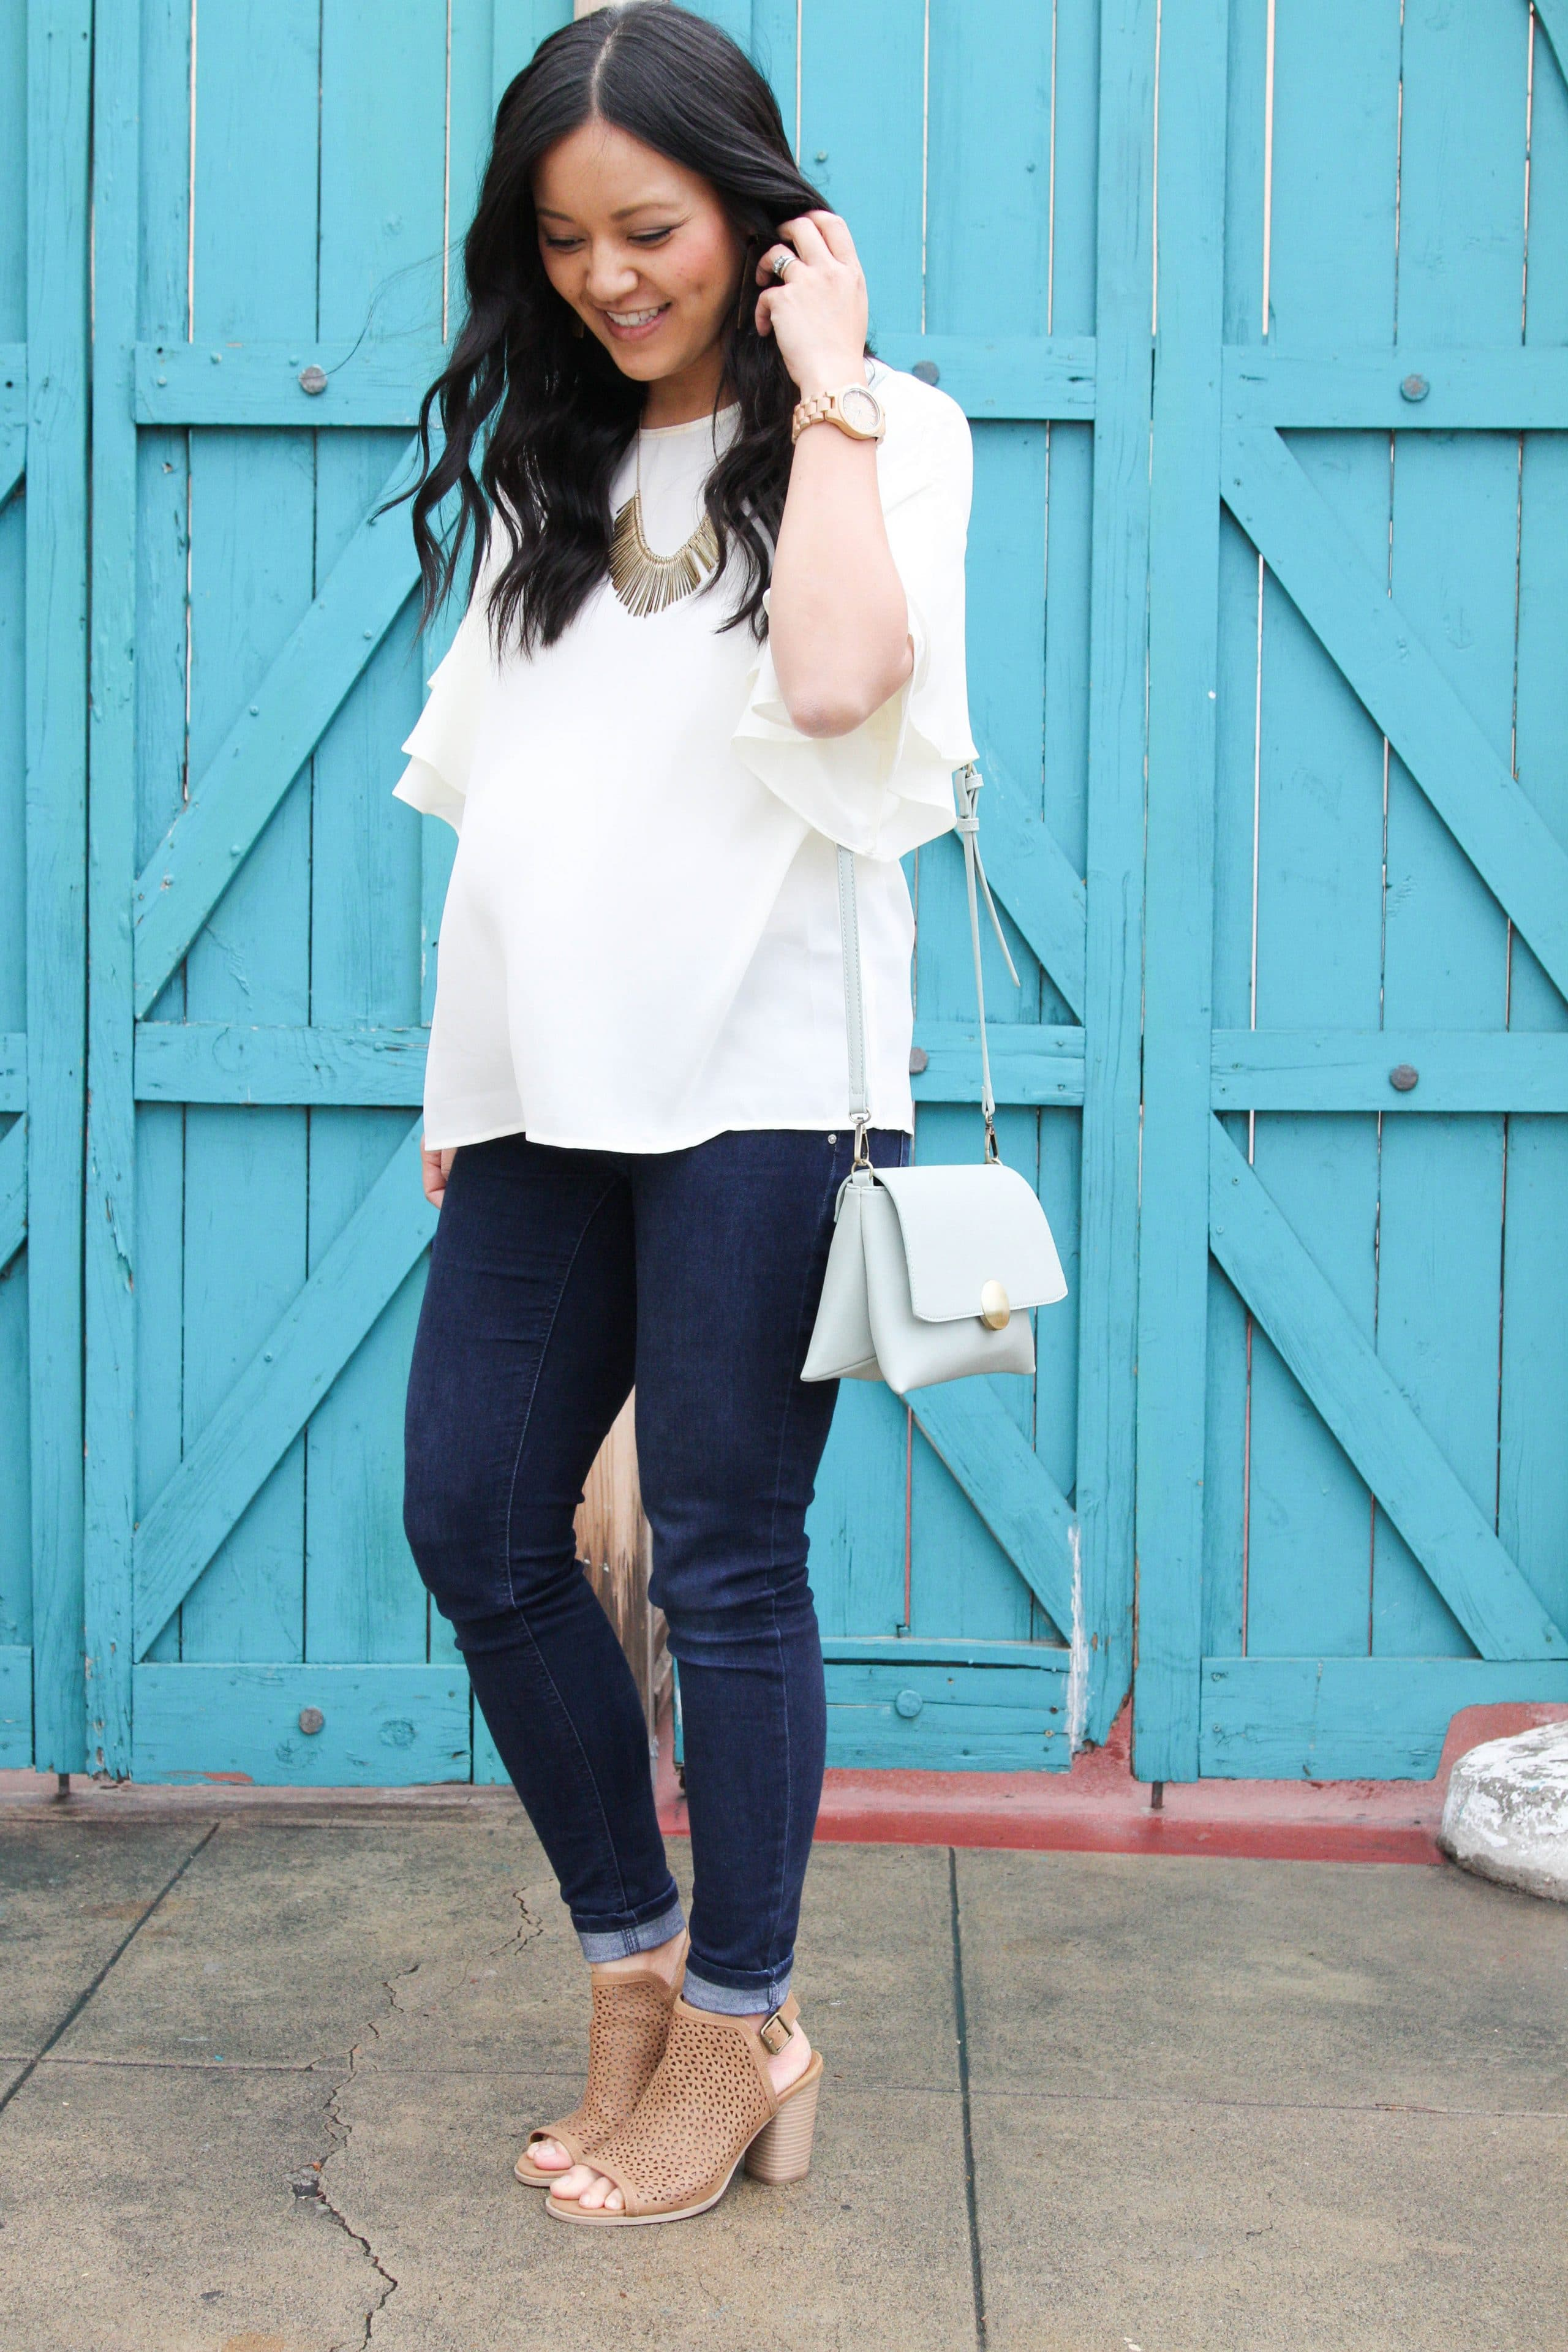 Skinny jeans + Heeled Booties + White Blouse + Mint Purse